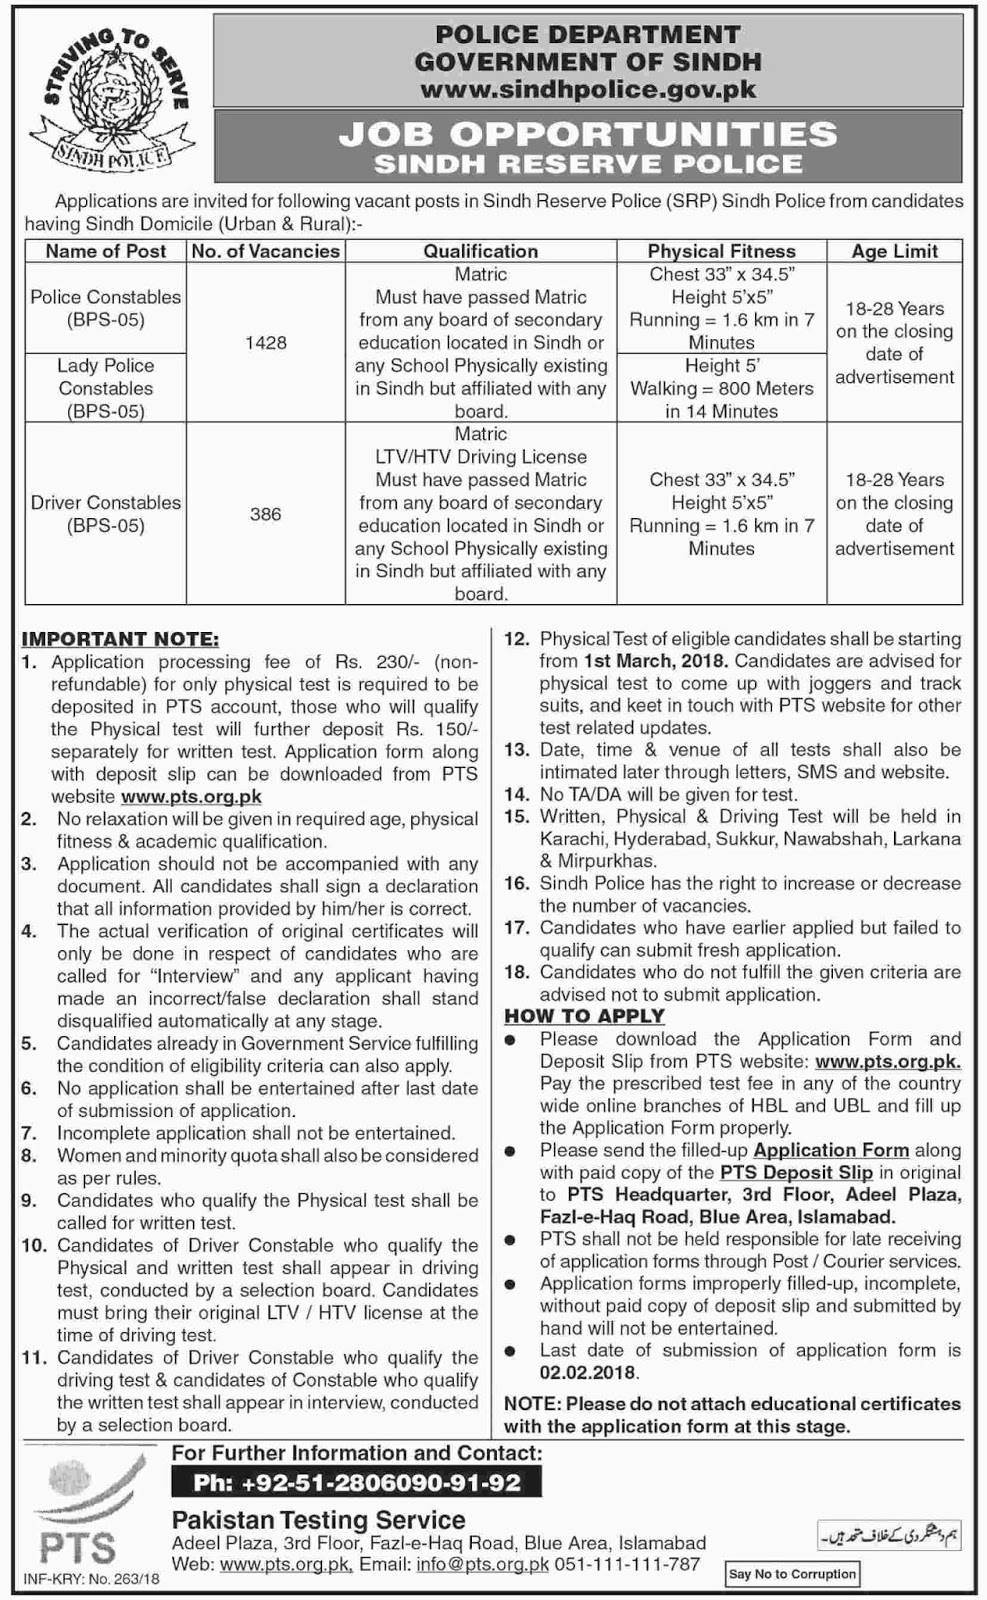 Jobs In Police Department Govt of Sindh Islamabad 2018 - PTS Jobs